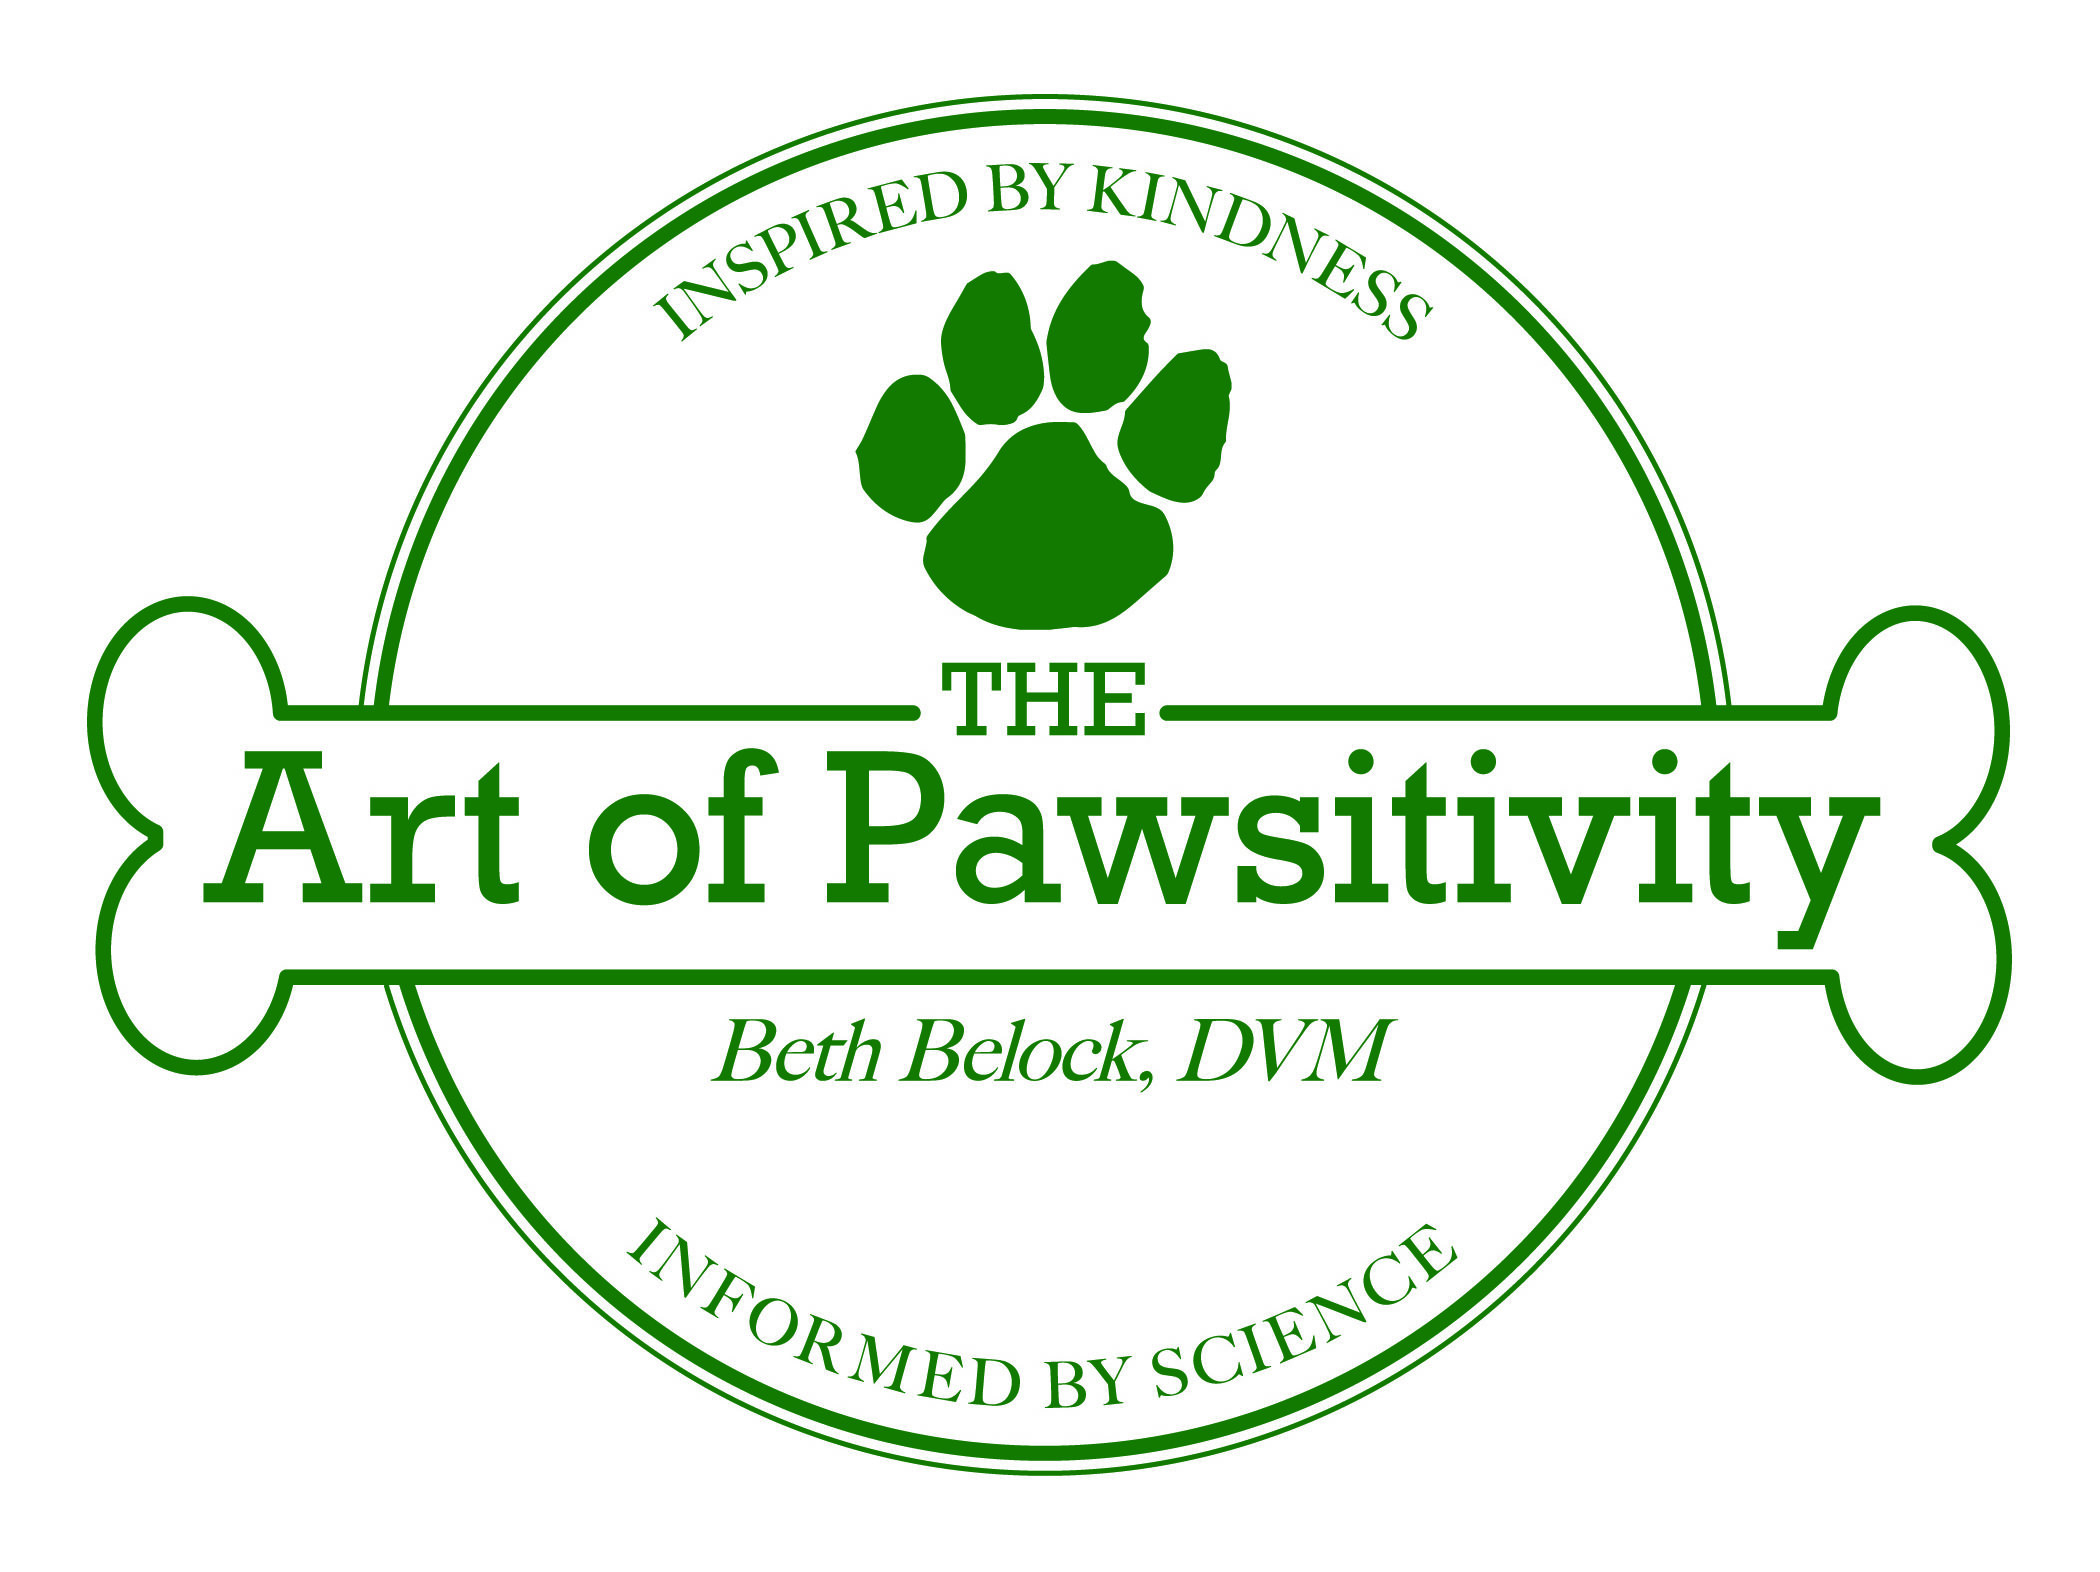 The Art of Pawsitivity